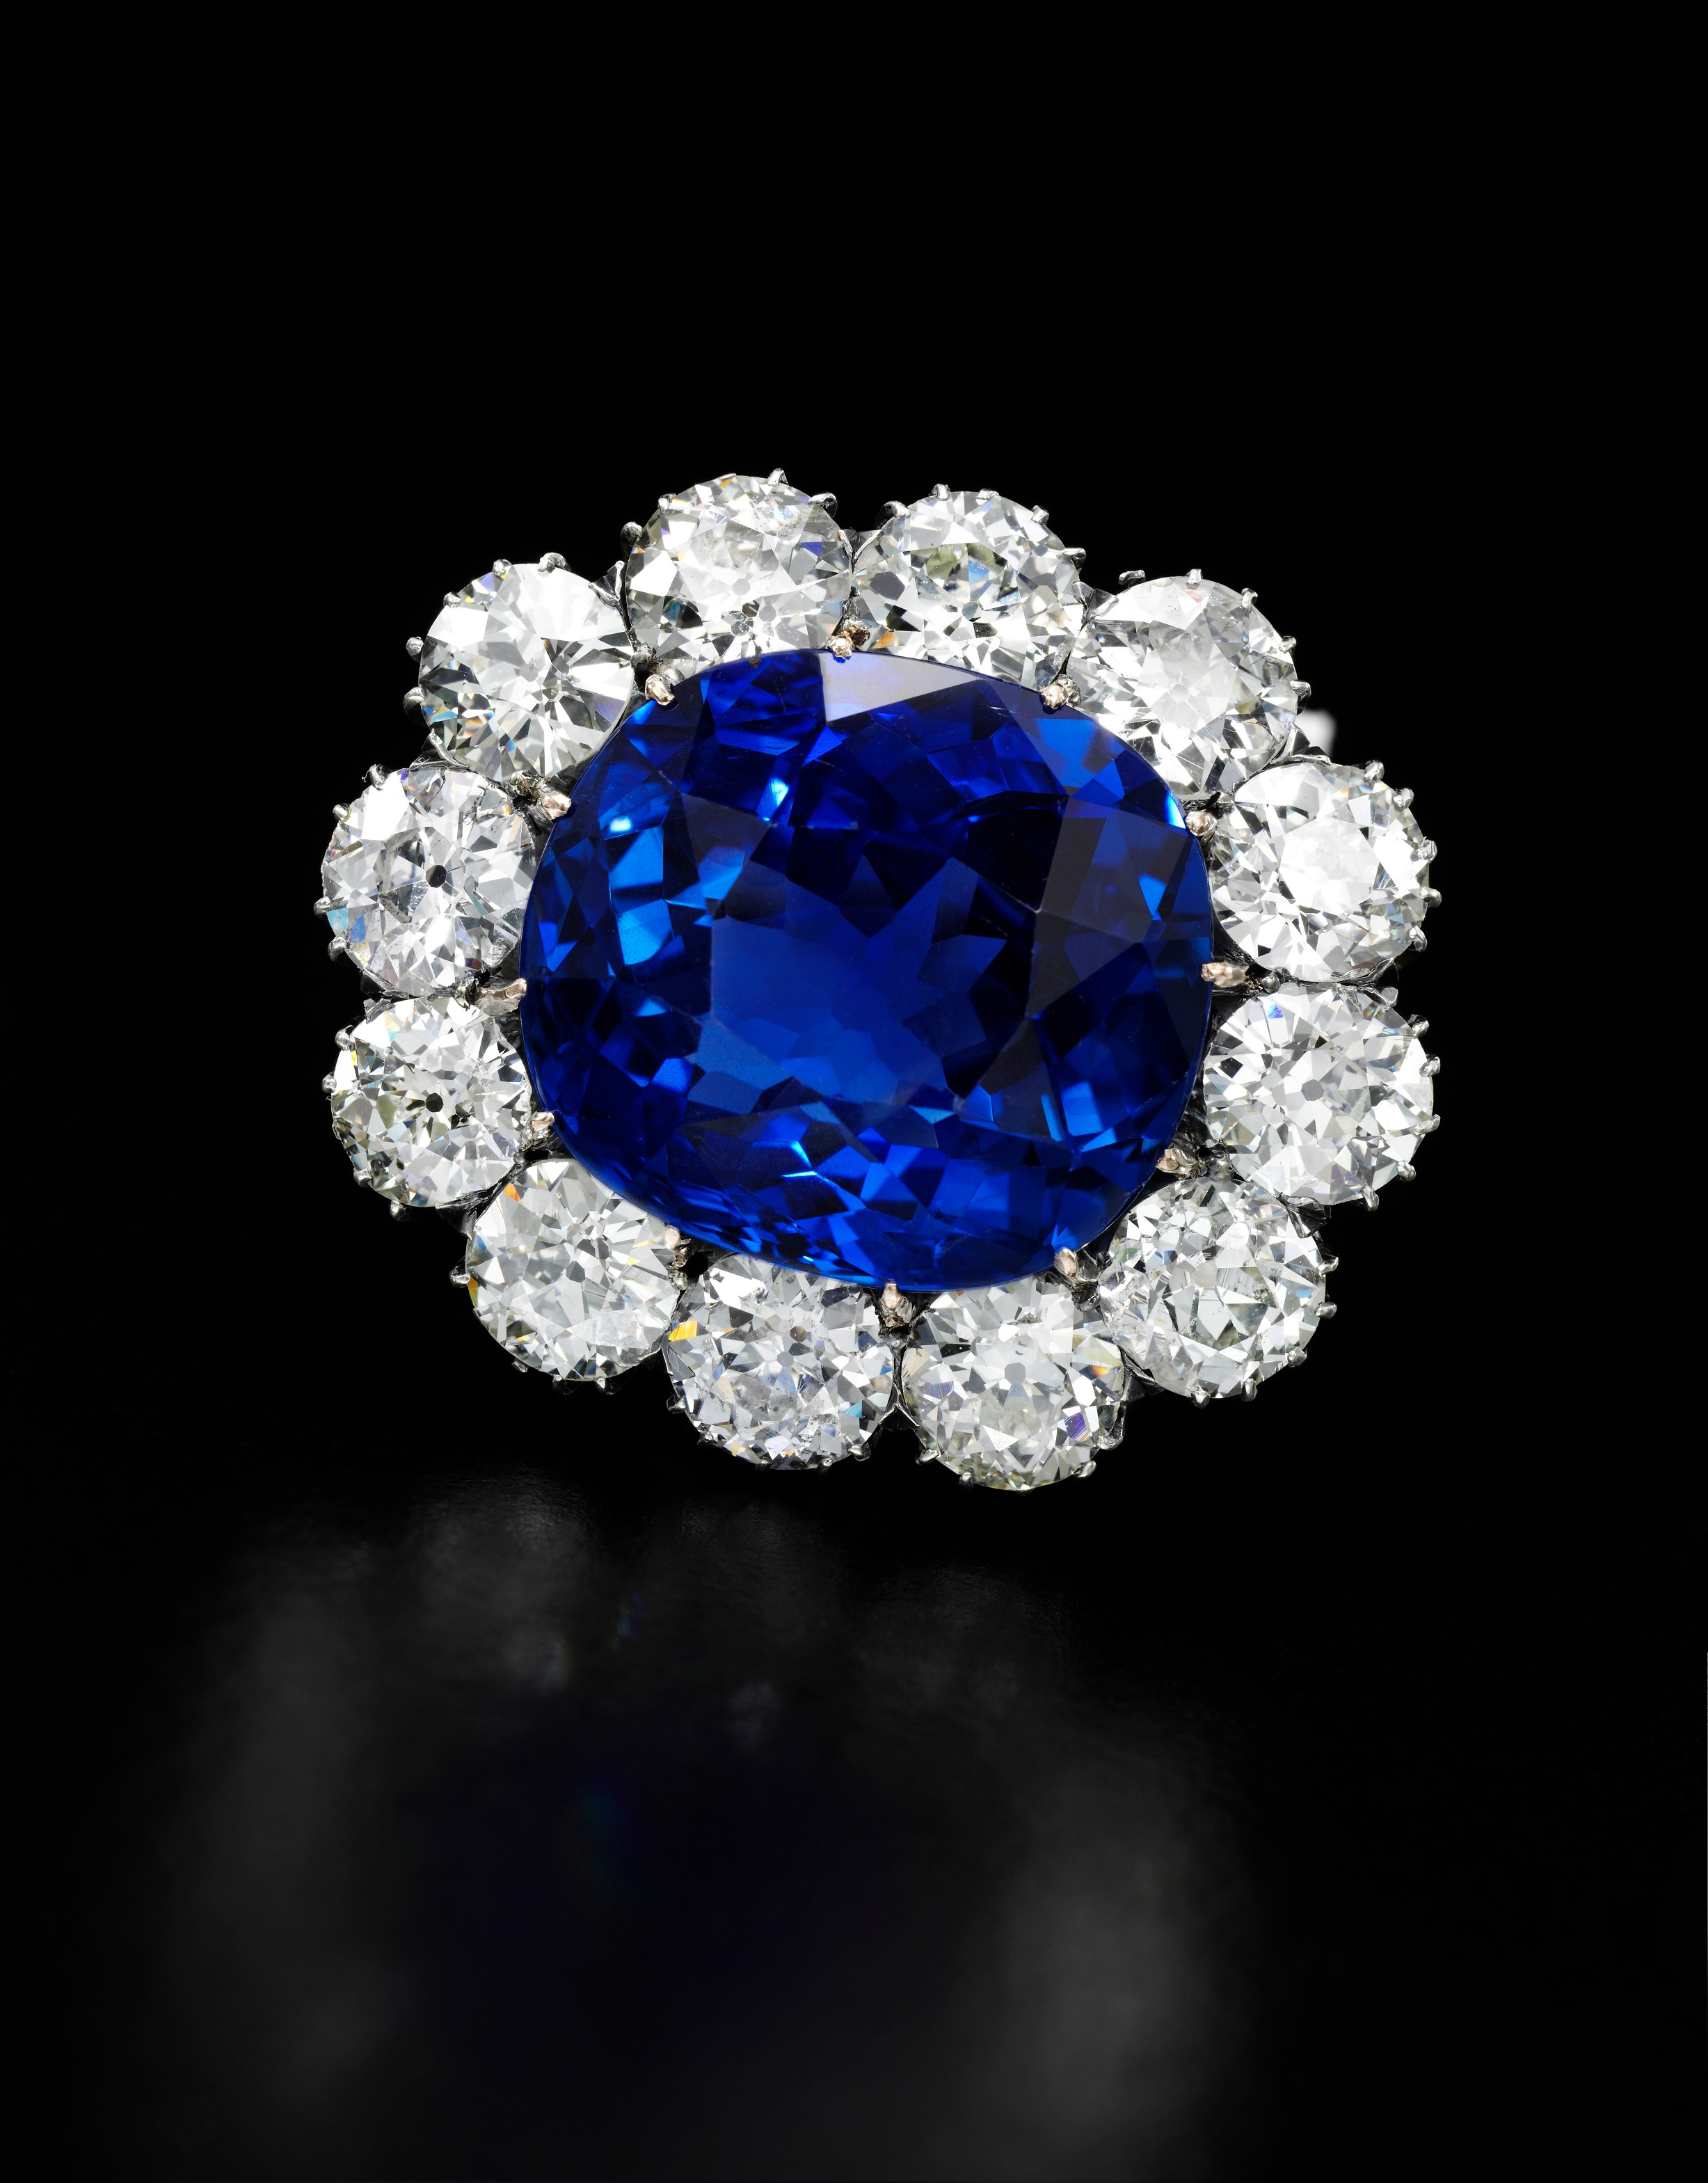 Impressive sapphire and diamond brooch -  on black -Royal Jewels from the Bourbon Parma Family - Sotheby's 14 November 2018.jpg